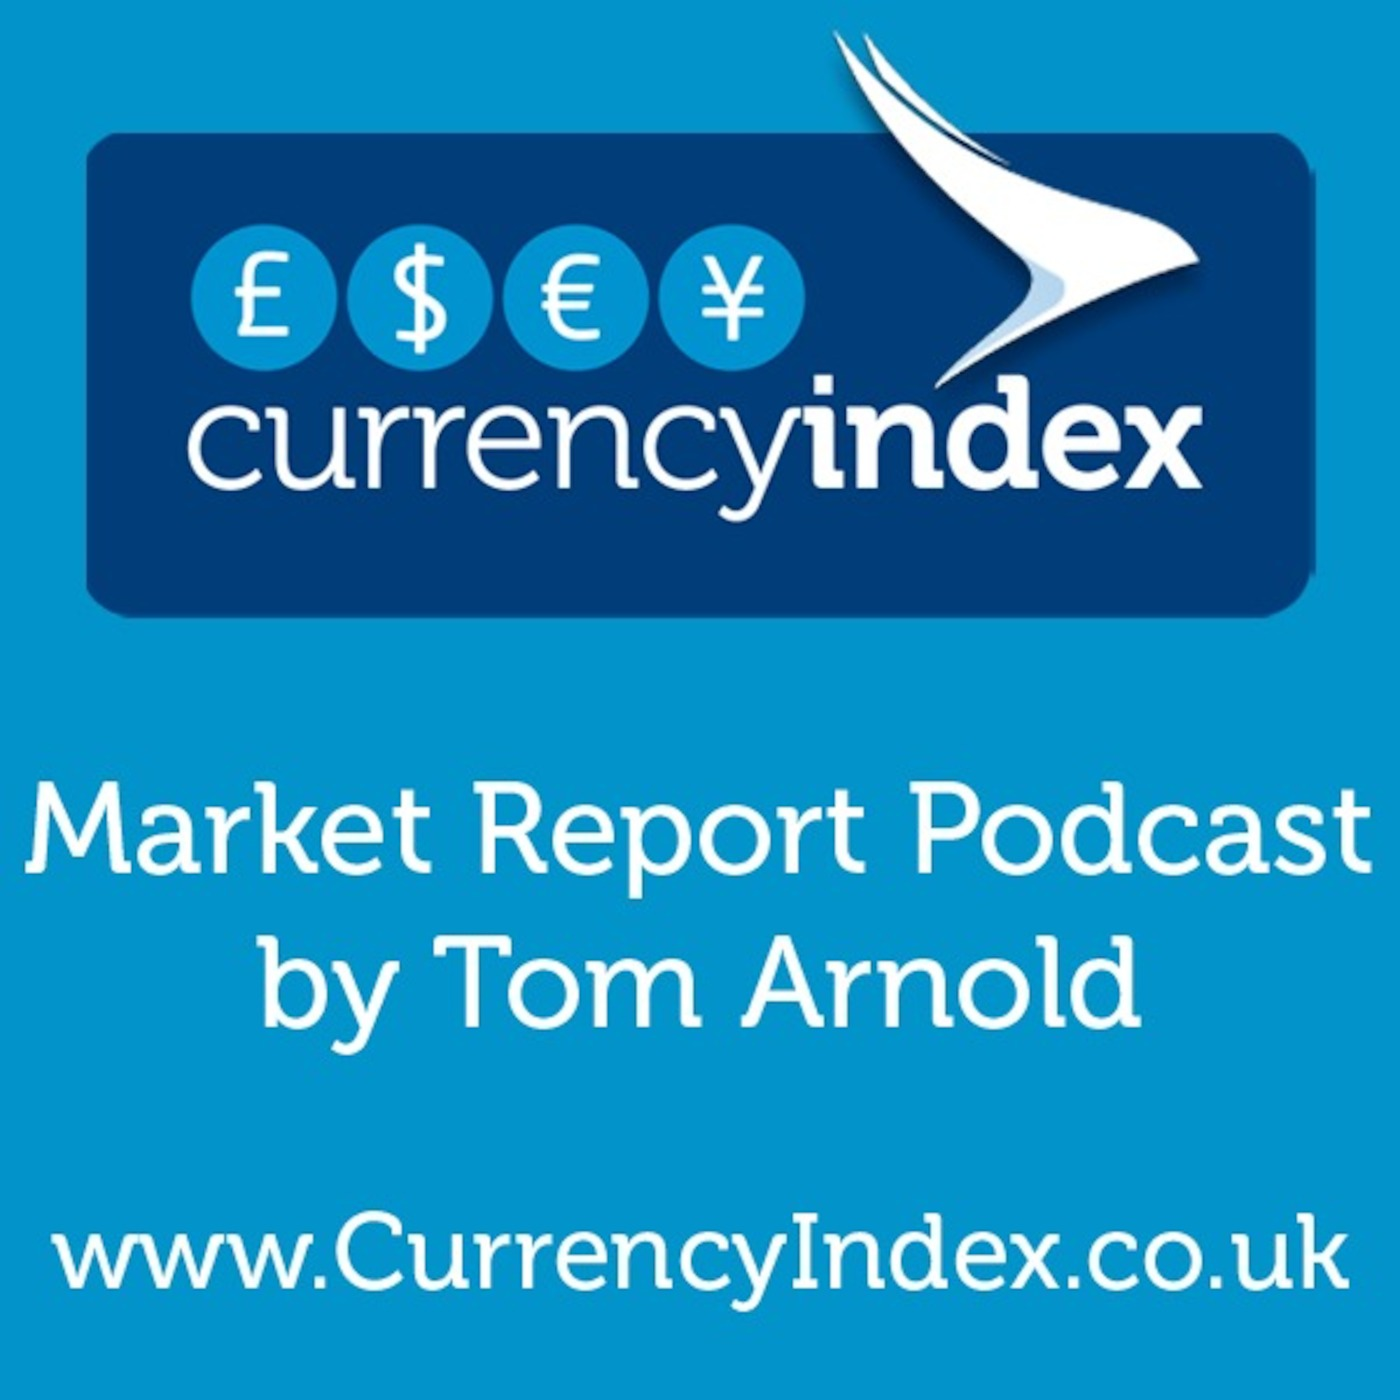 Currency Index #005 - Markets Ponder the Pound